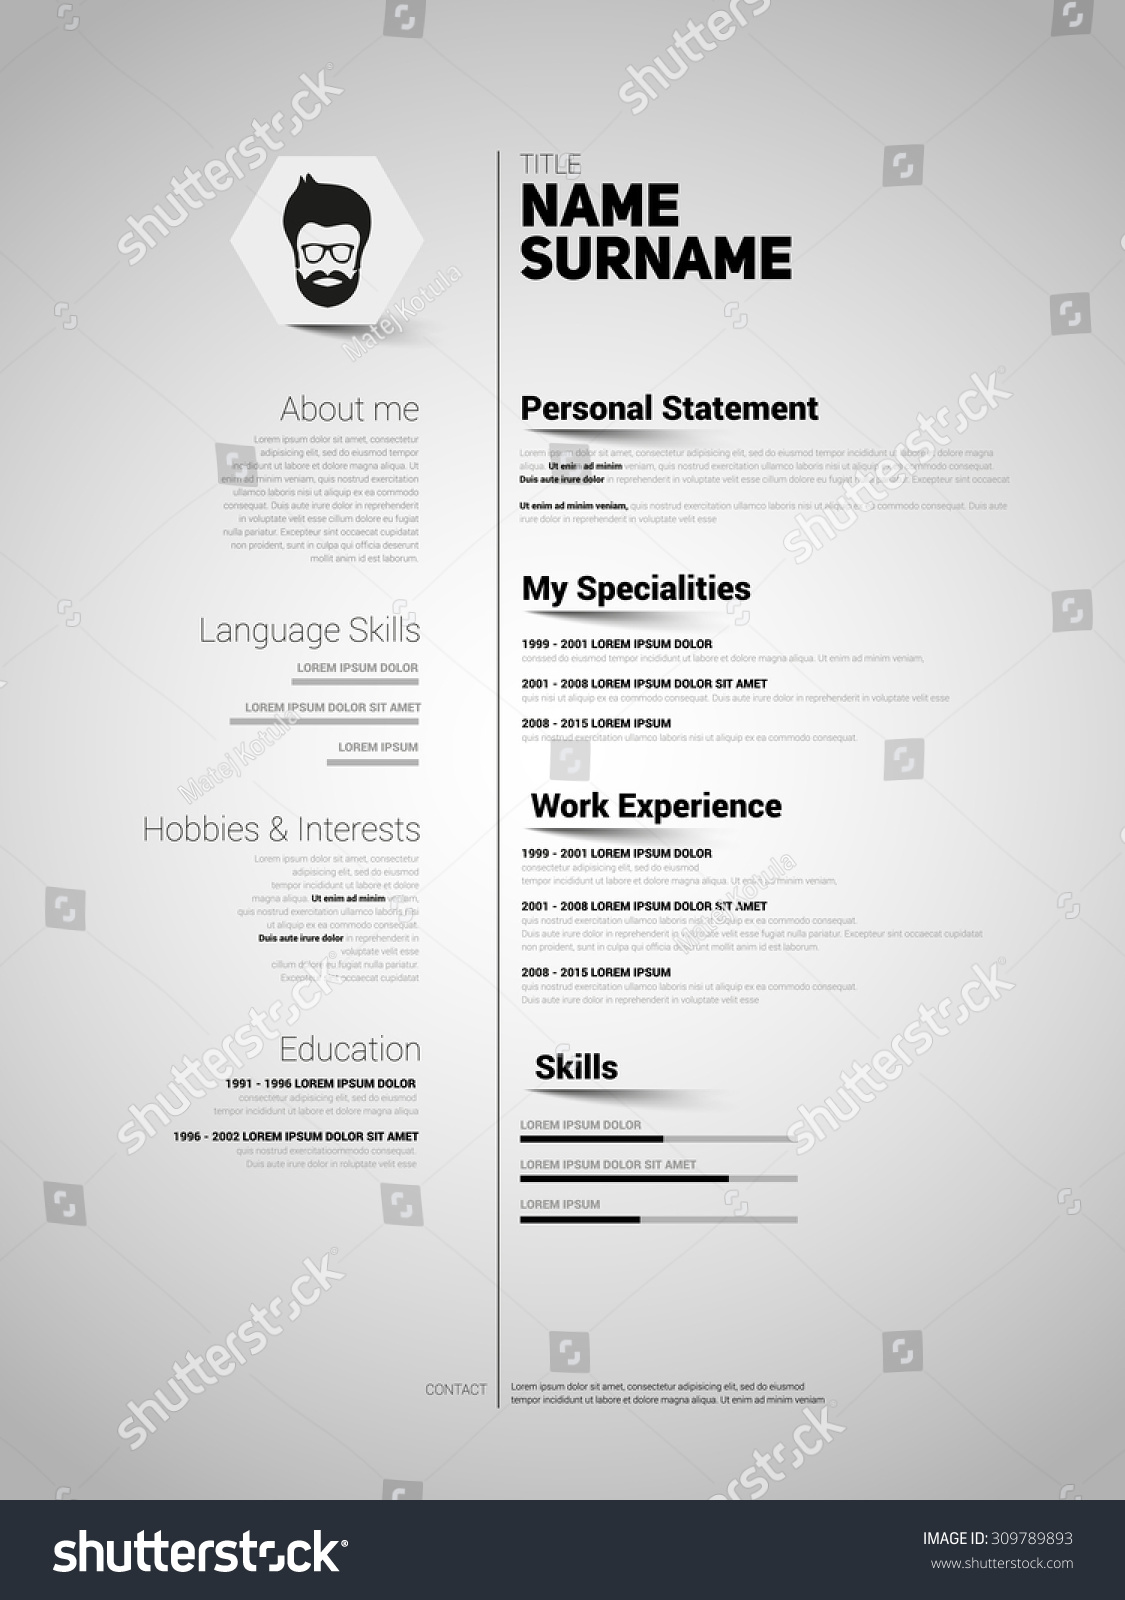 mini st cv resume template simple design stock vector 309789893 mini st cv resume template simple design vector